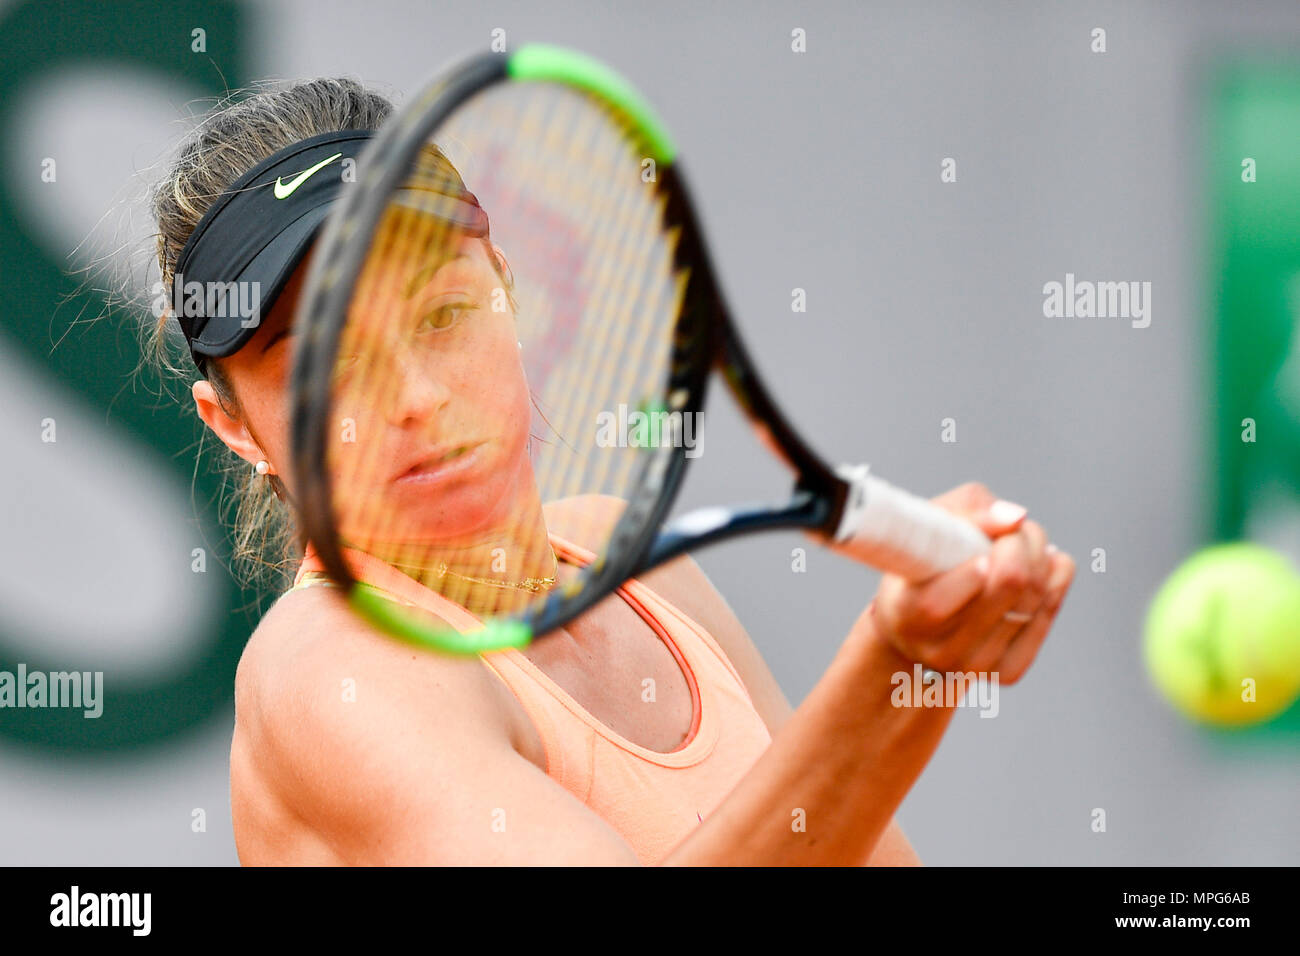 Paris. 23rd May, 2018. Margot Yerolymos of France returns the ball to Lu Jiajing of China during the women's singles Qualification 1st round match of French Open in Paris, France on May 23, 2018. Margot Yerolymos won 2-0. Credit: Chen Yichen/Xinhua/Alamy Live News Stock Photo